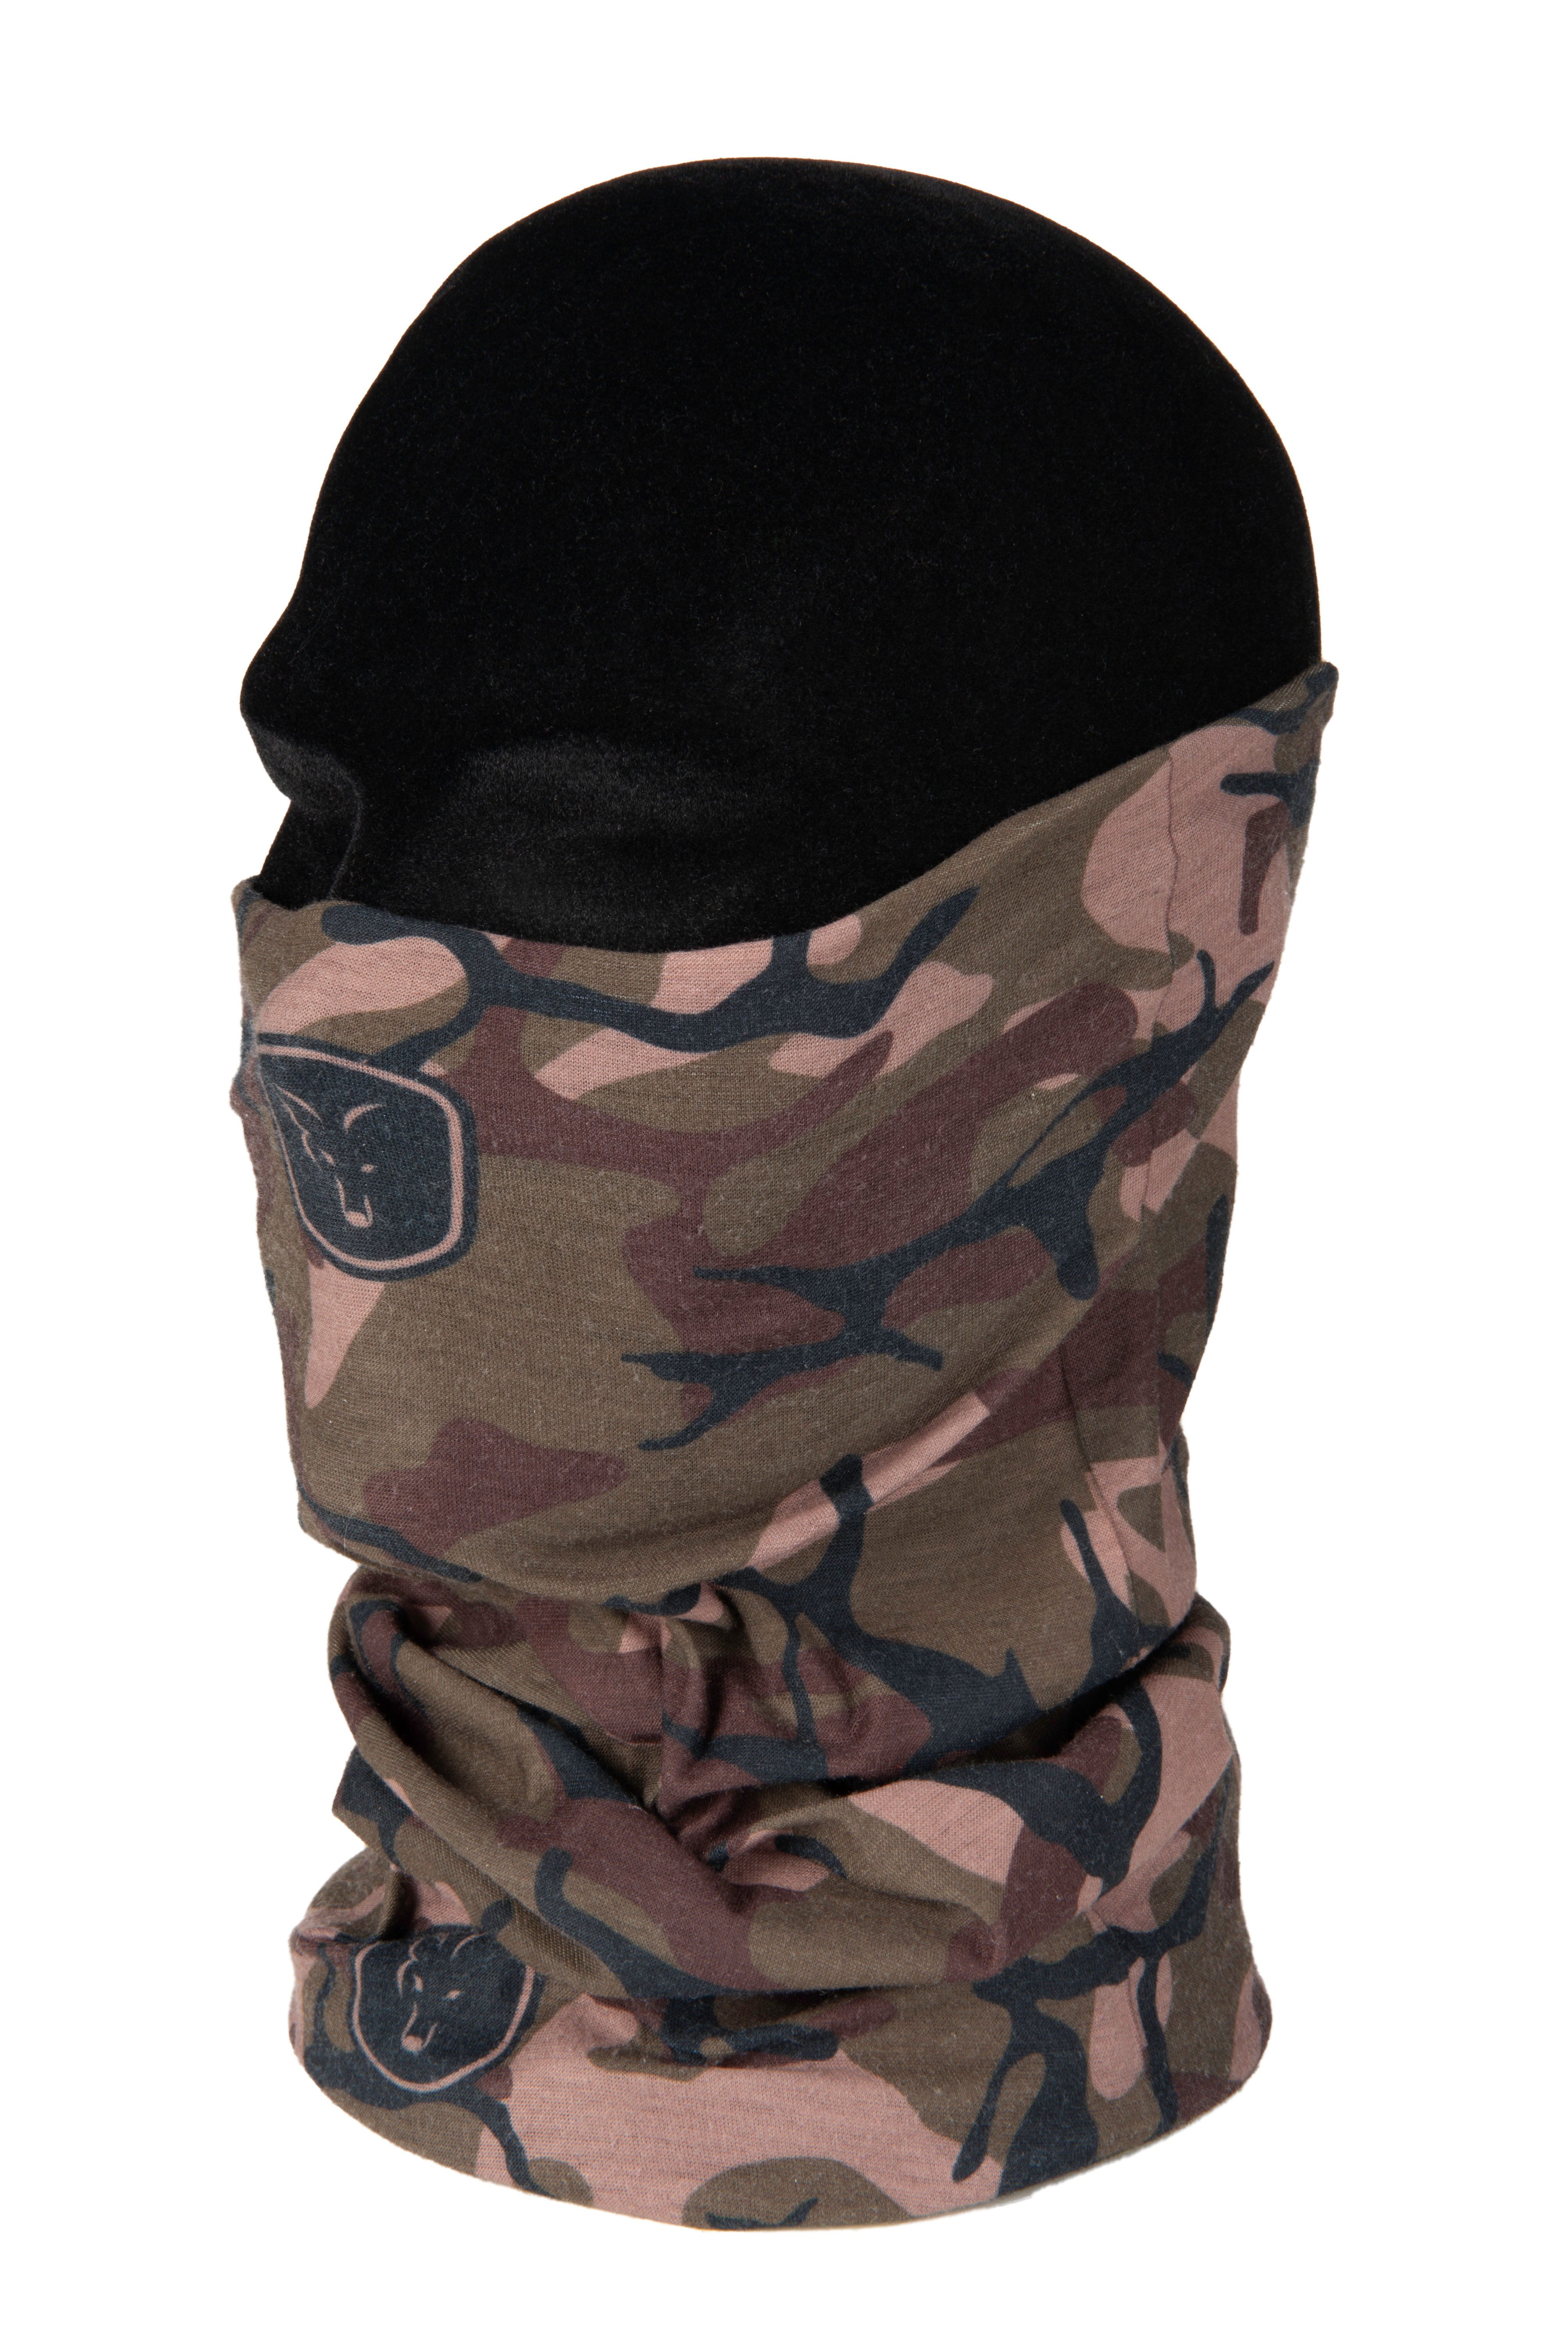 chh008_fox_camo_snood_worn_as_maskjpg